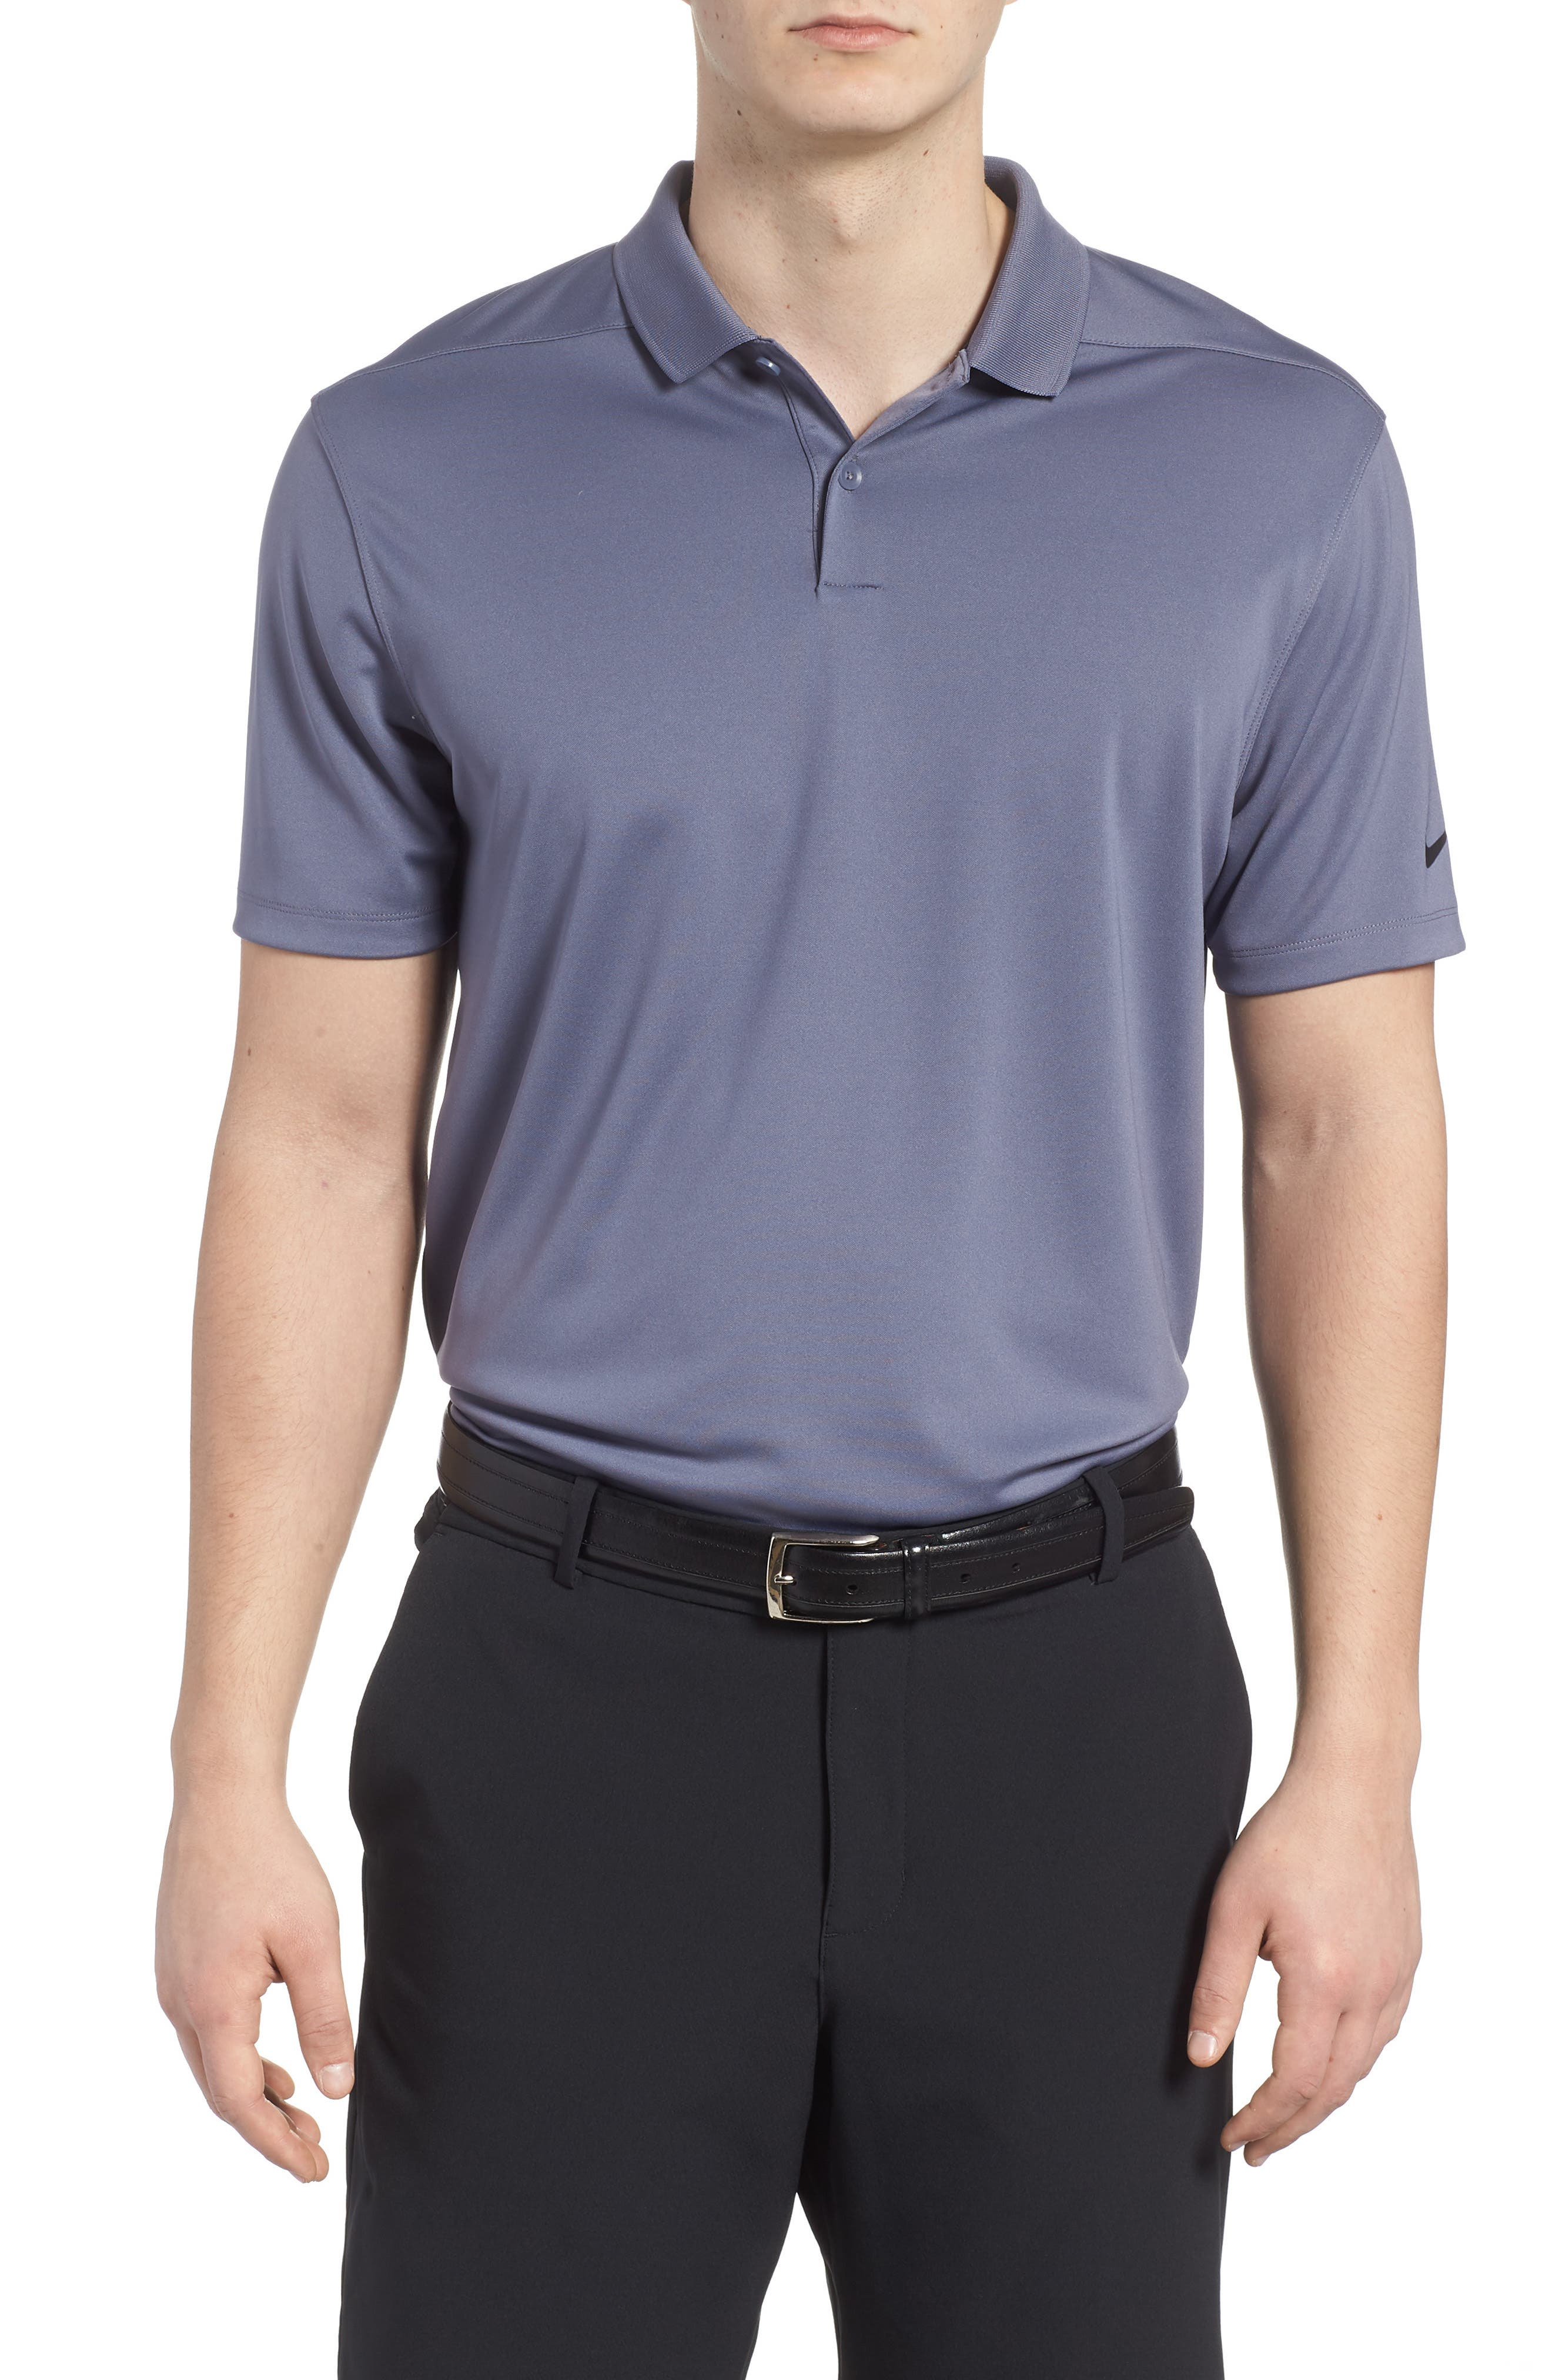 Dry Victory Golf Polo,                         Main,                         color, Light Carbon/ Black